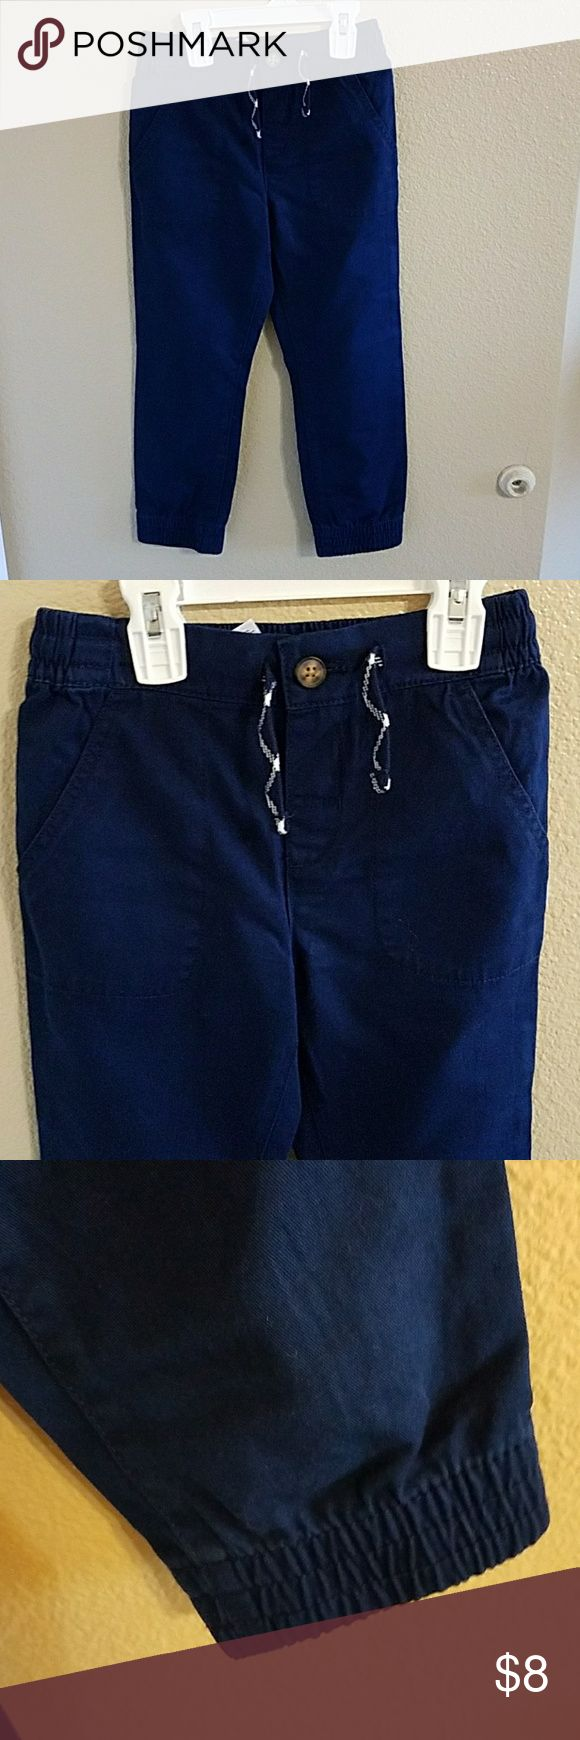 Carter's NWT Navy Blue Boys Pants size 6 NWT Carter's Navy Blue Boys Jogger Pants 2 pockets in front and on back. Elastic hem around ankles, button waist with drawstrings for a comfy adjustable fit. Carter's Bottoms